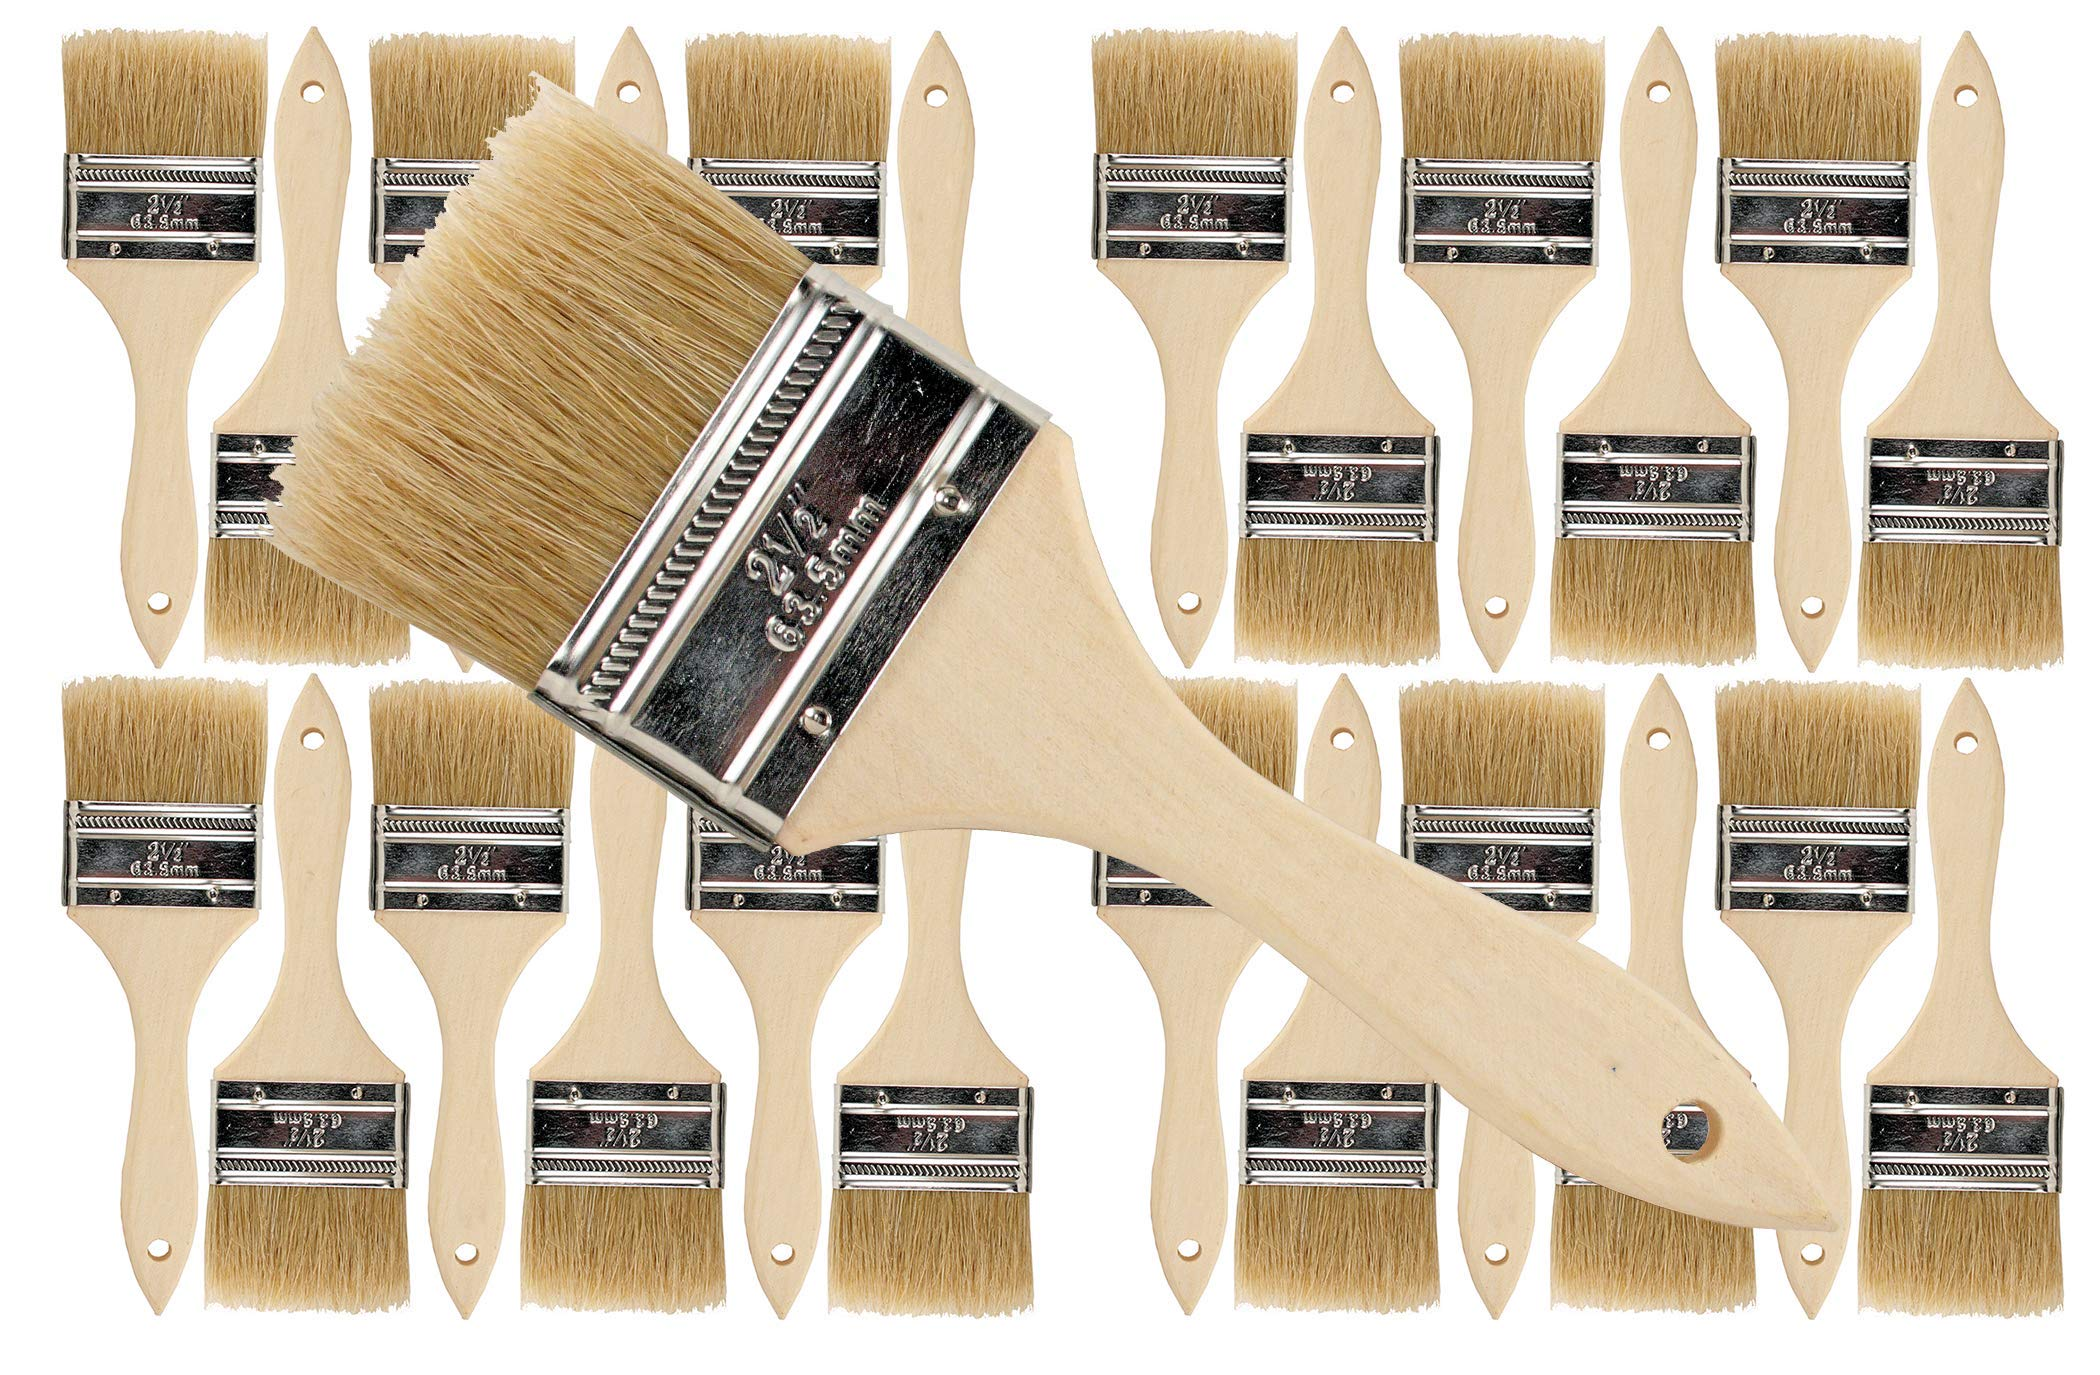 Pro Grade - Chip Paint Brushes - 24 Ea 2.5 Inch Chip Paint Brush by Pro-Grade